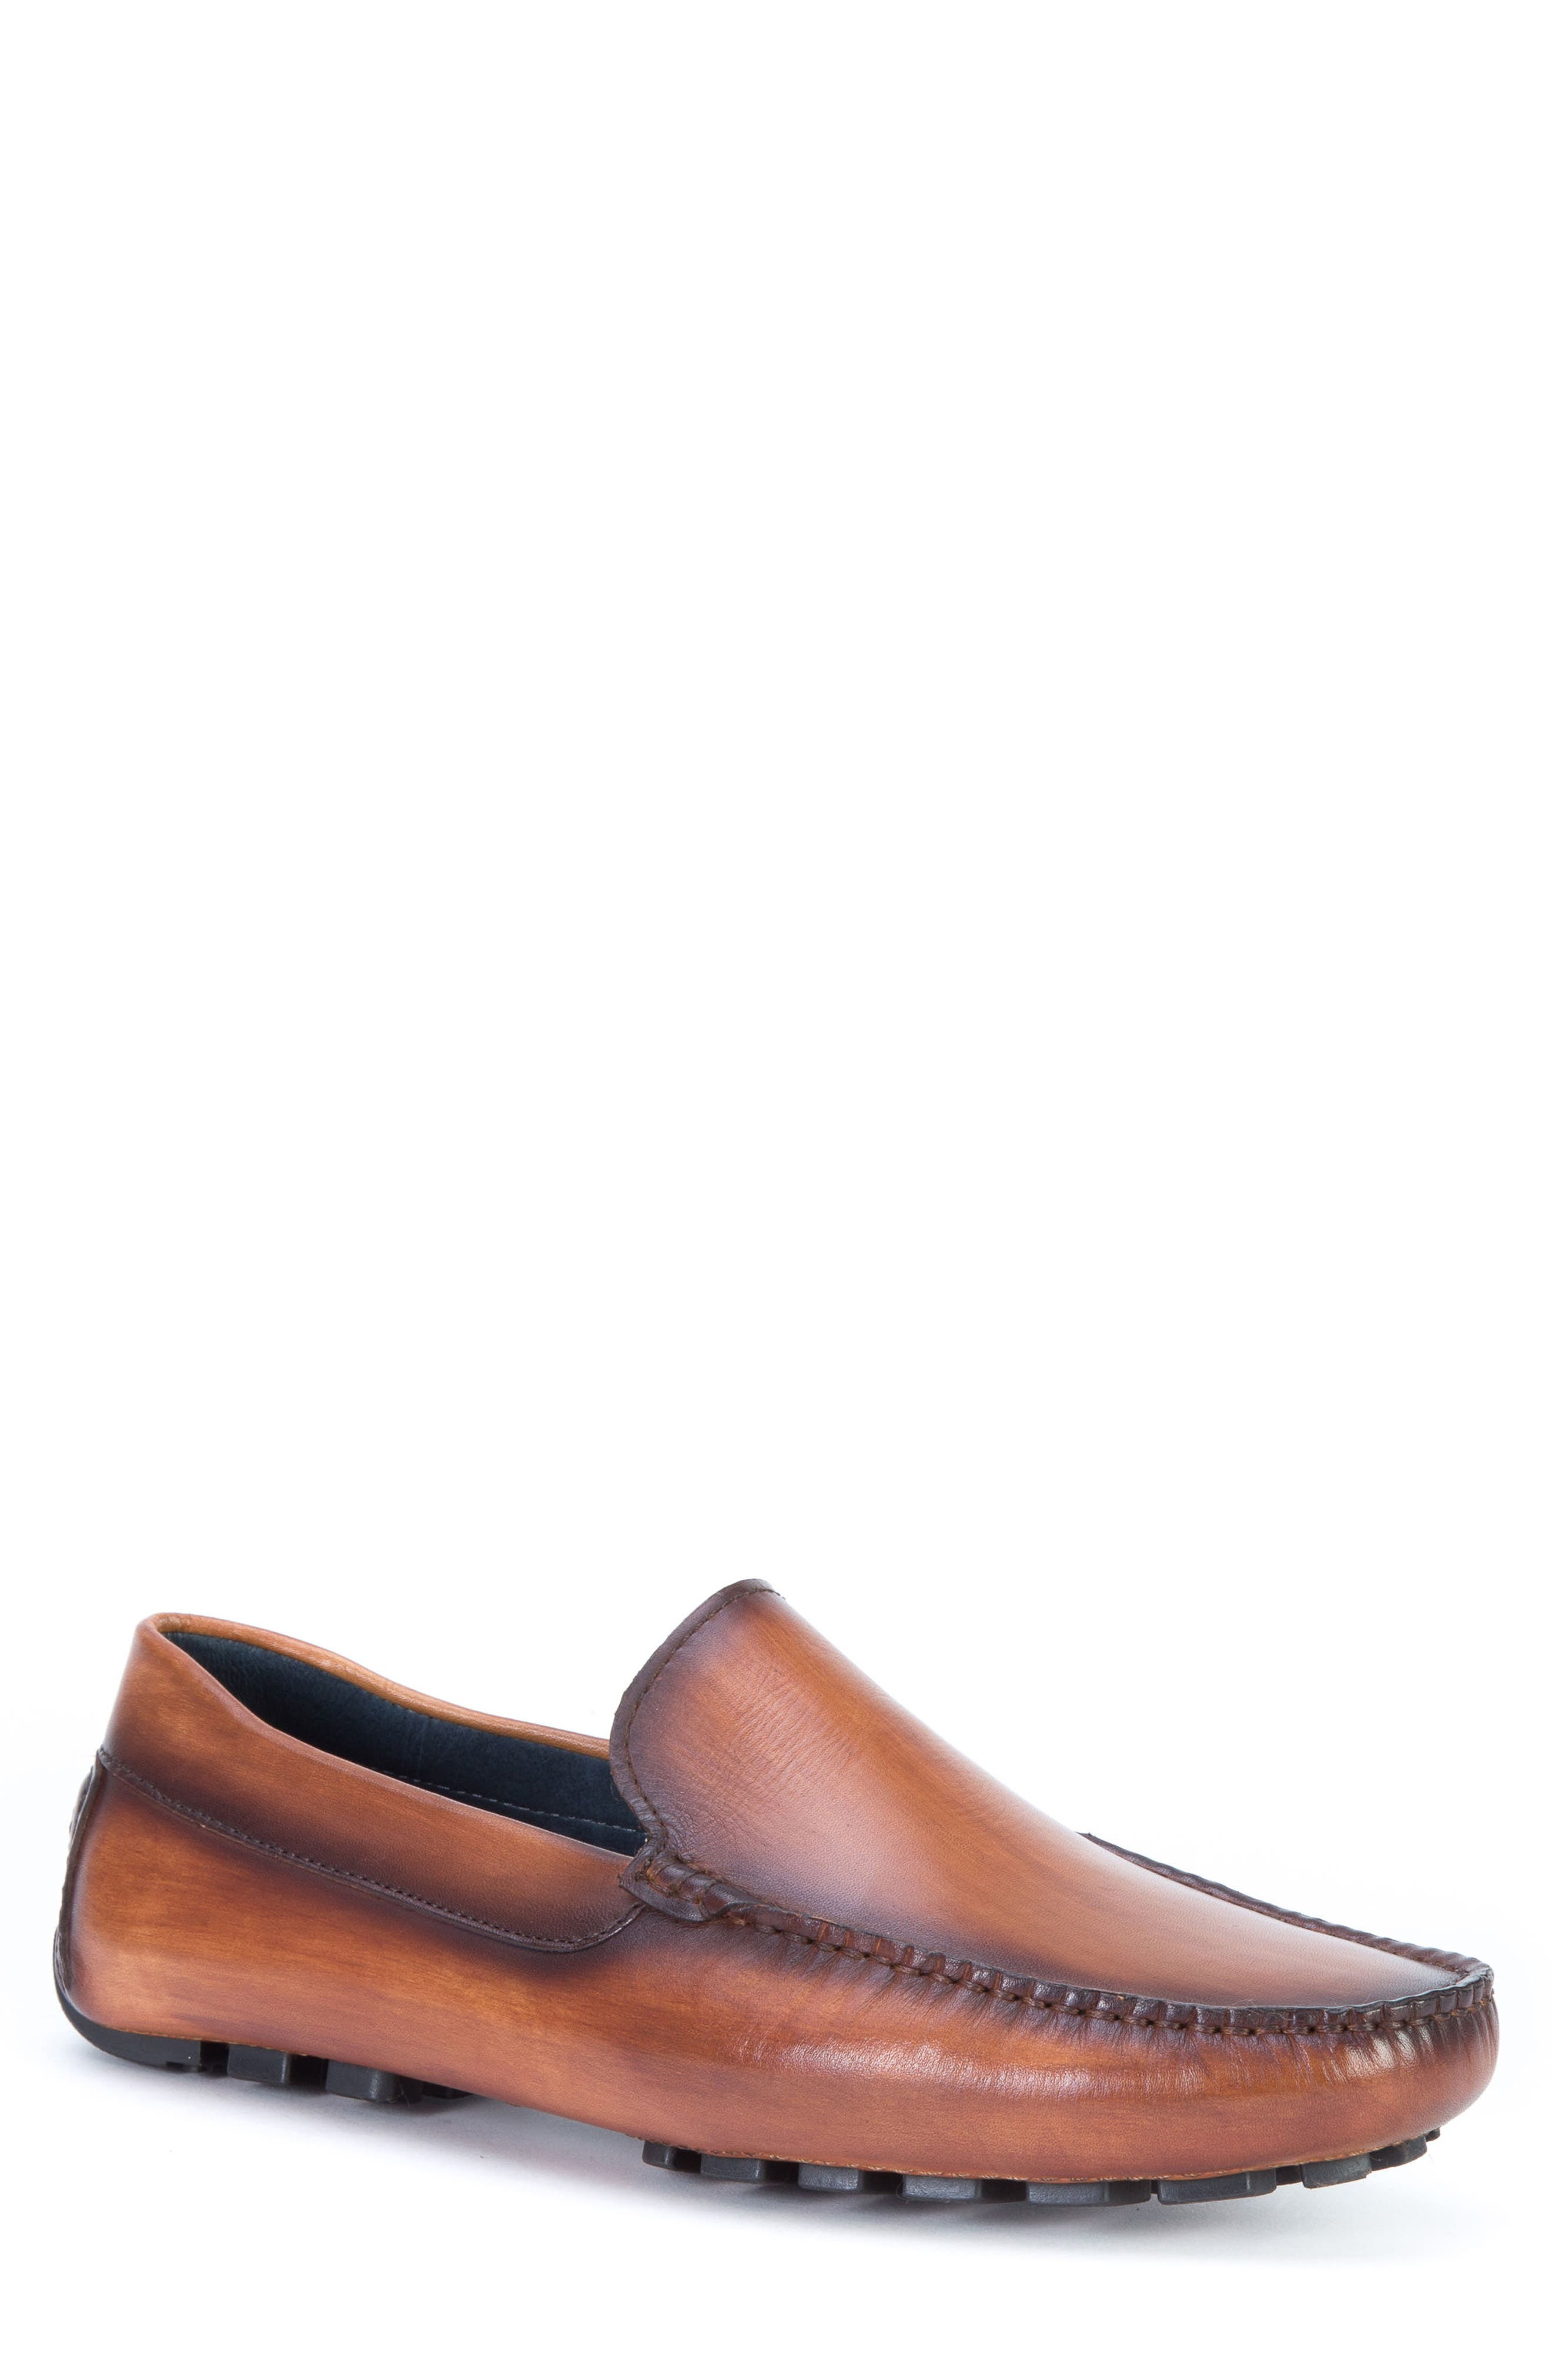 Matisse Driving Moccasin,                             Main thumbnail 1, color,                             Cognac Leather